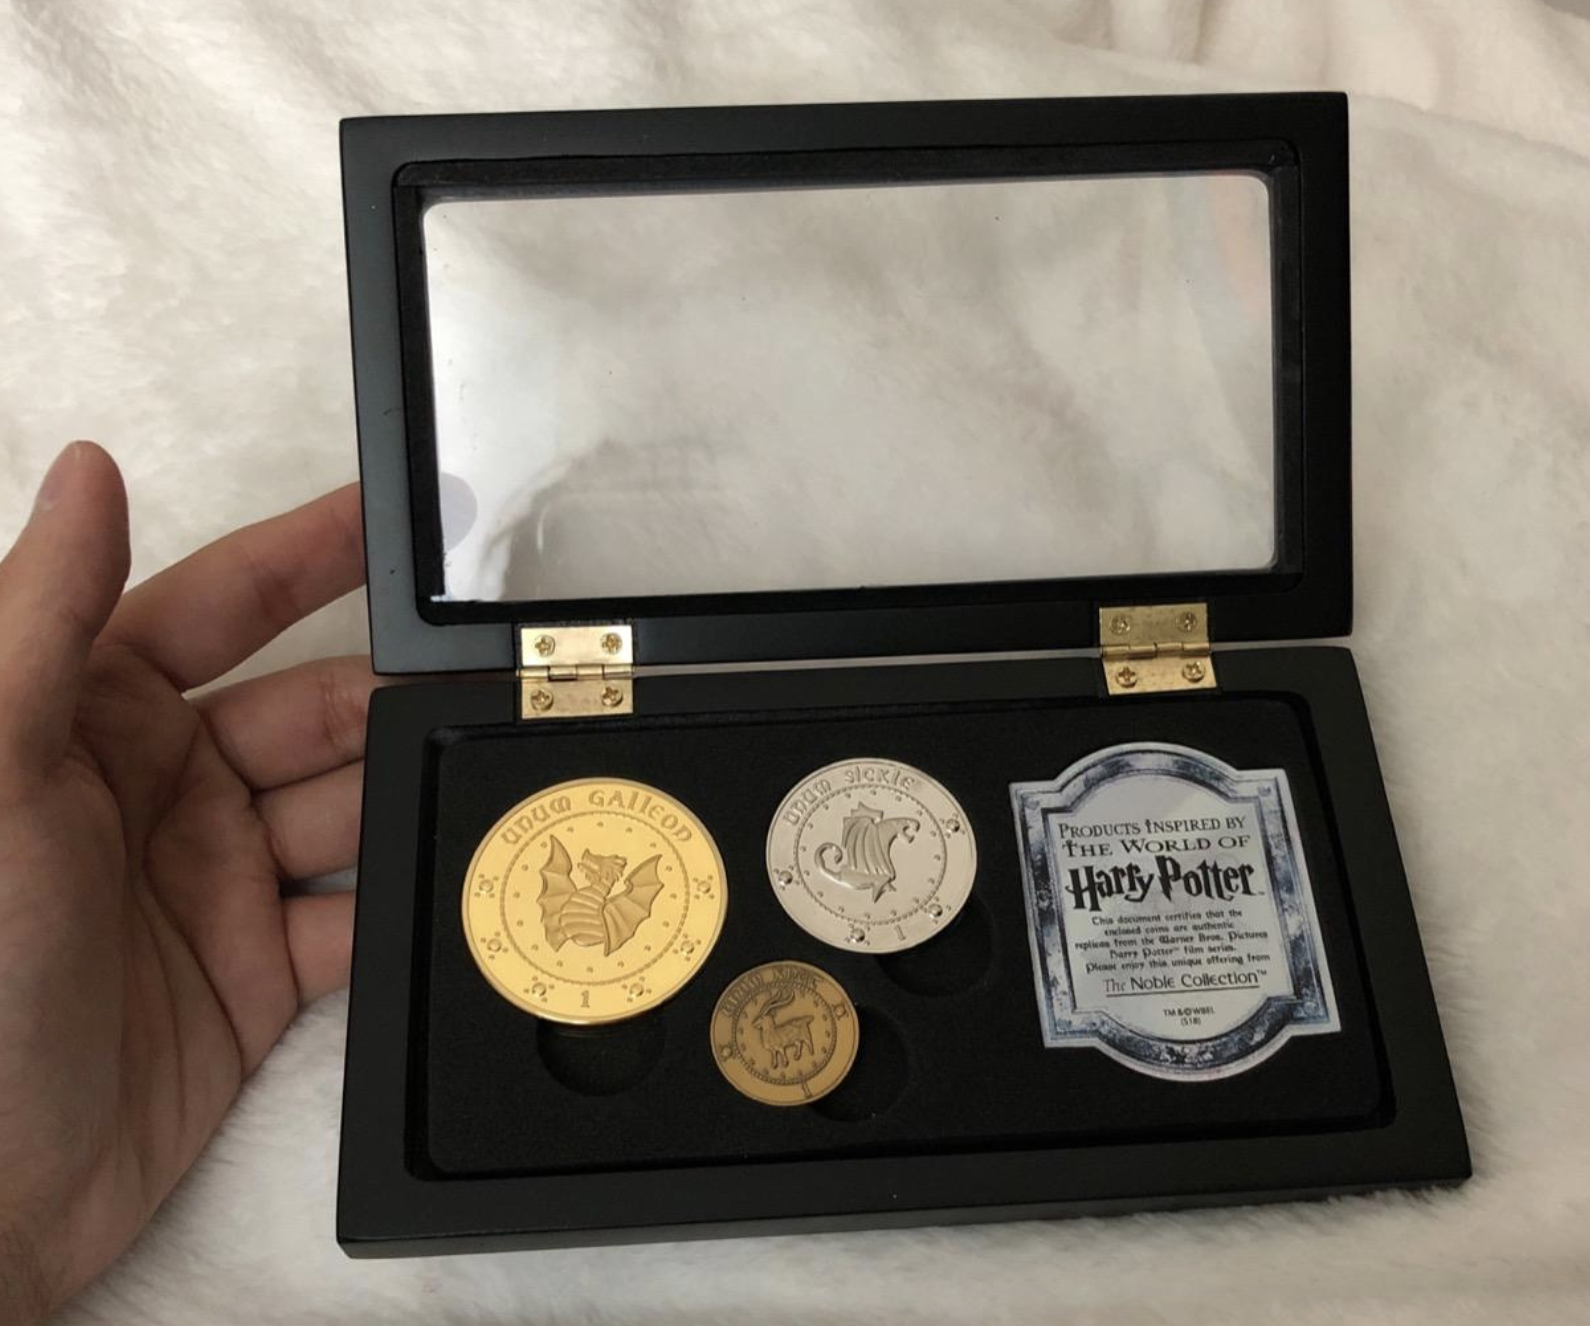 reviewer photo of the coin collection